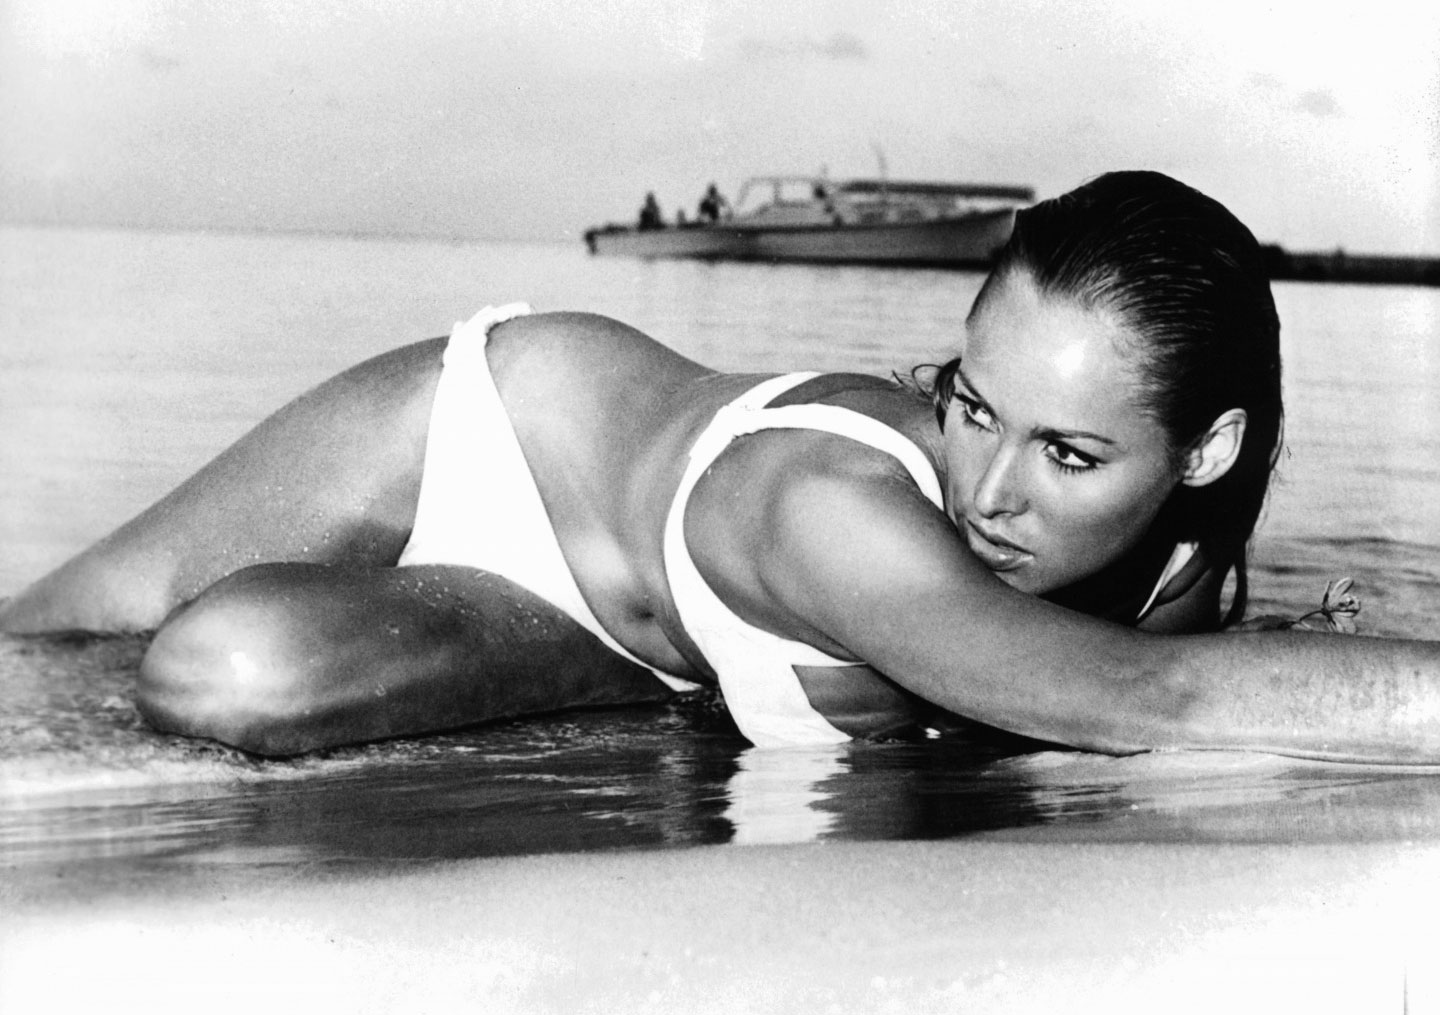 ursula-andress-casino-royale-bond-girl-1-crop